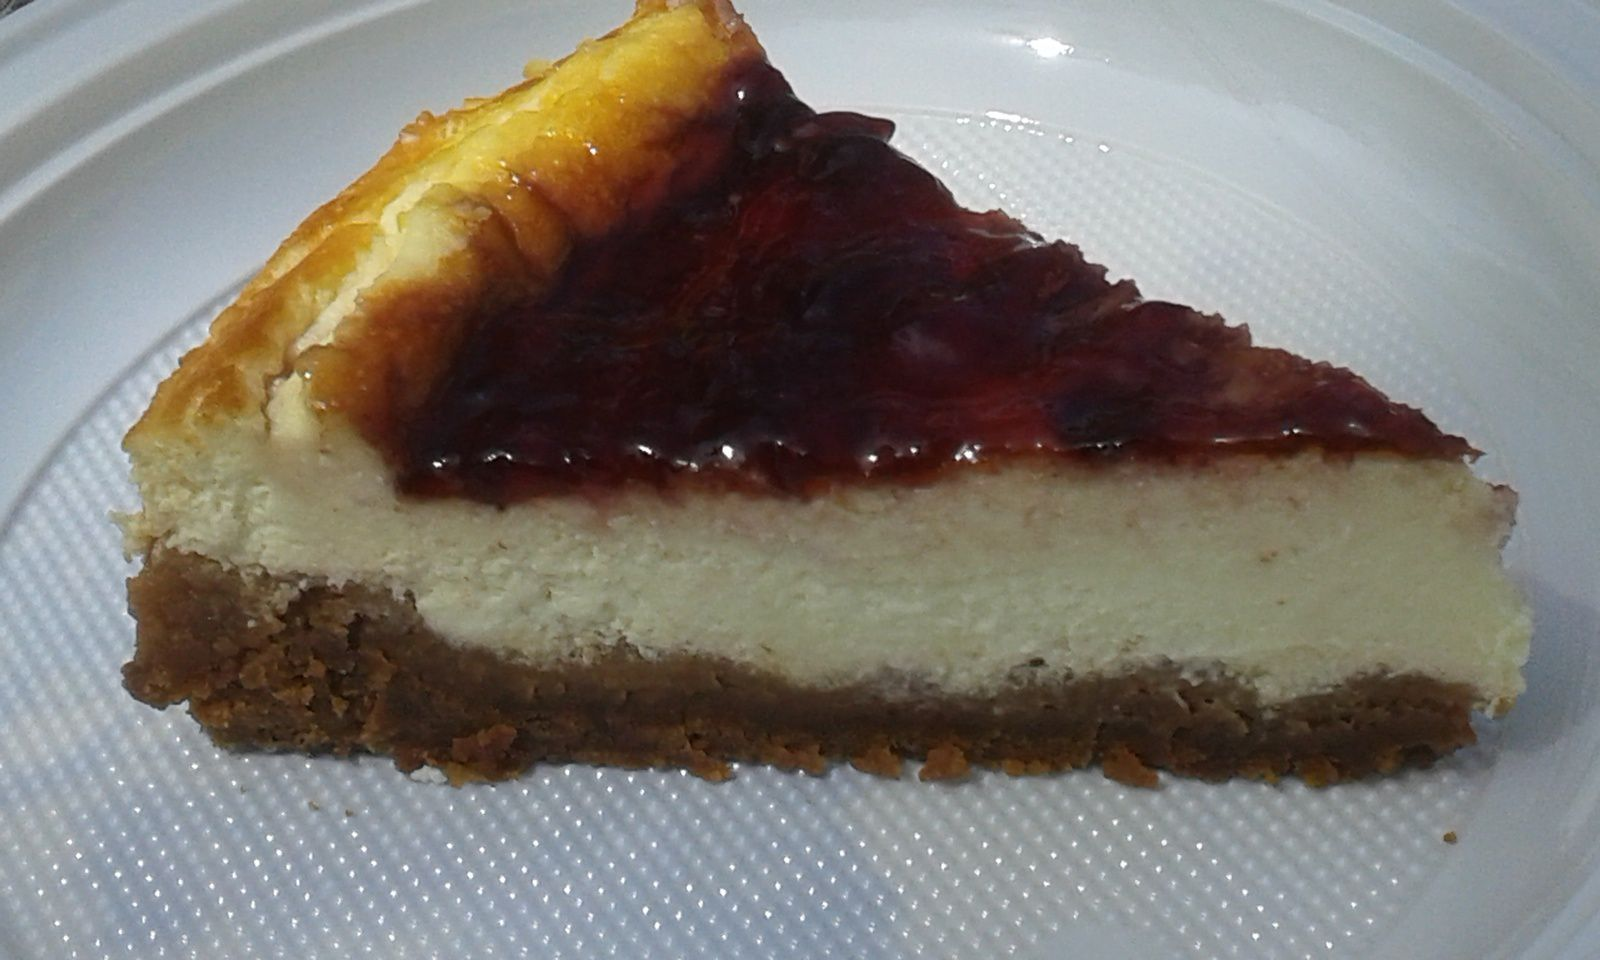 New-York Style Cheesecake - lesdouceursdenaty&sév.over-blog.com